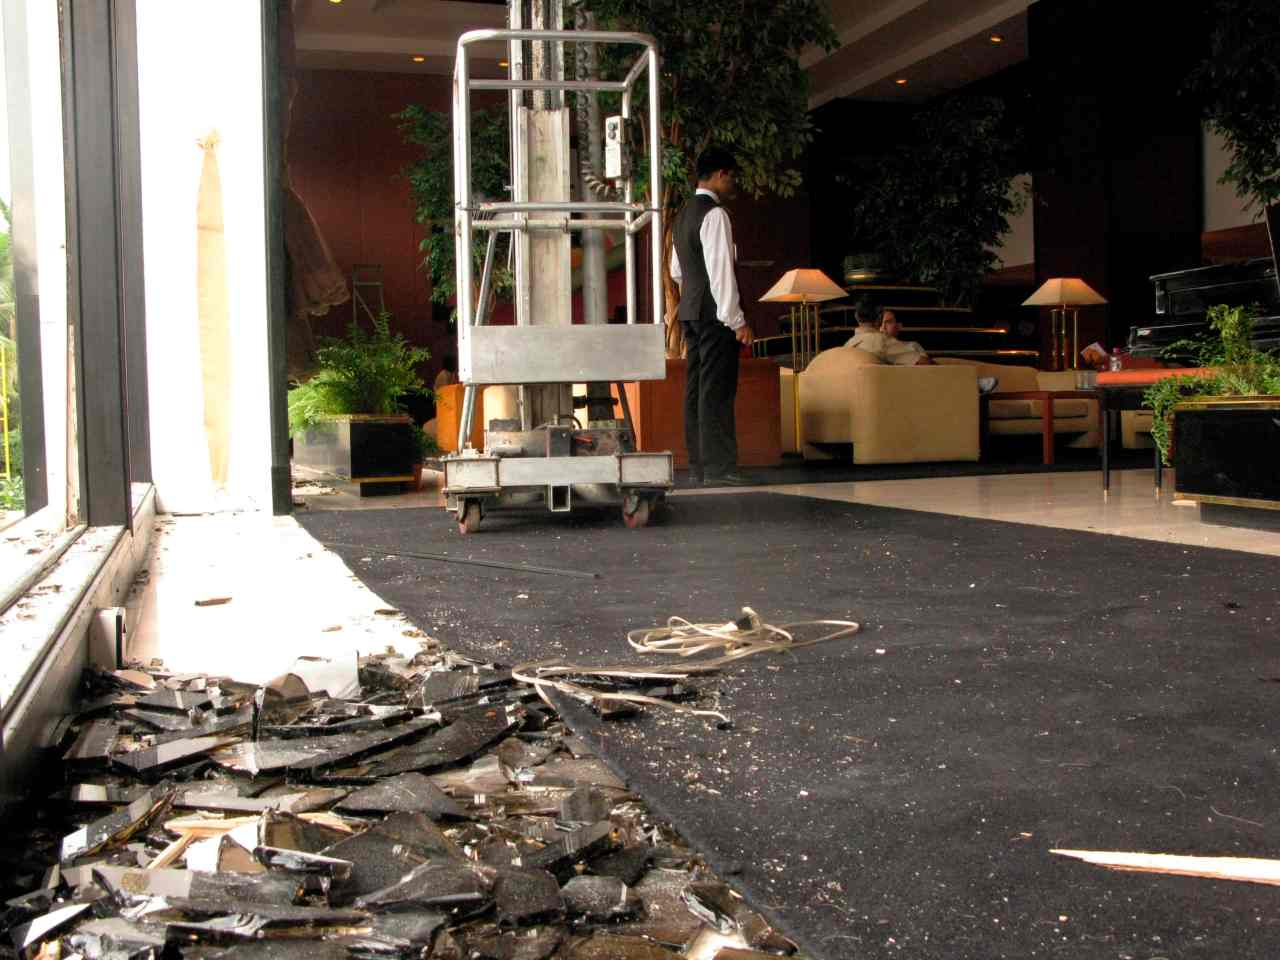 The damaged lobby of Trident-Oberoi hotel, a day-after the operations to dislodge militants ended on November 29. (Image: Reuters)